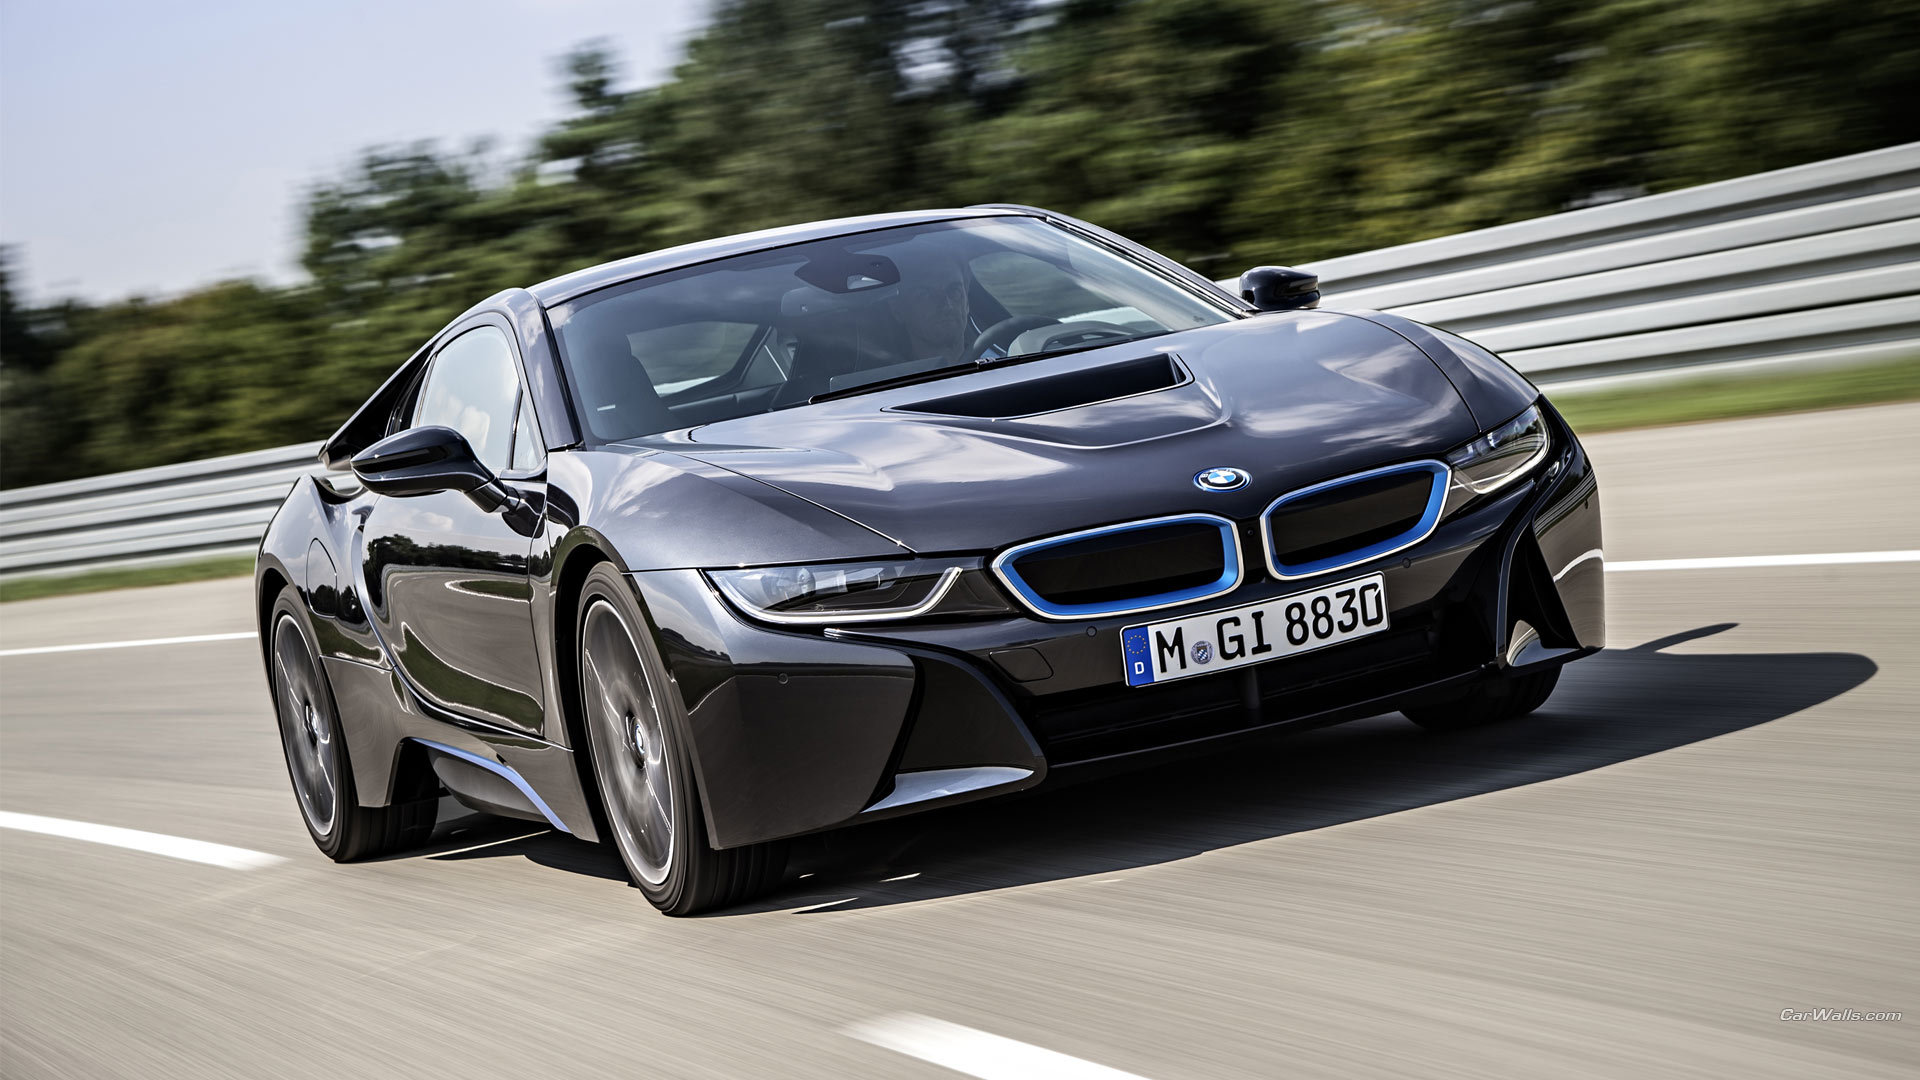 Free Download Bmw I8 Wallpaper Id 126935 Hd 1080p For Computer